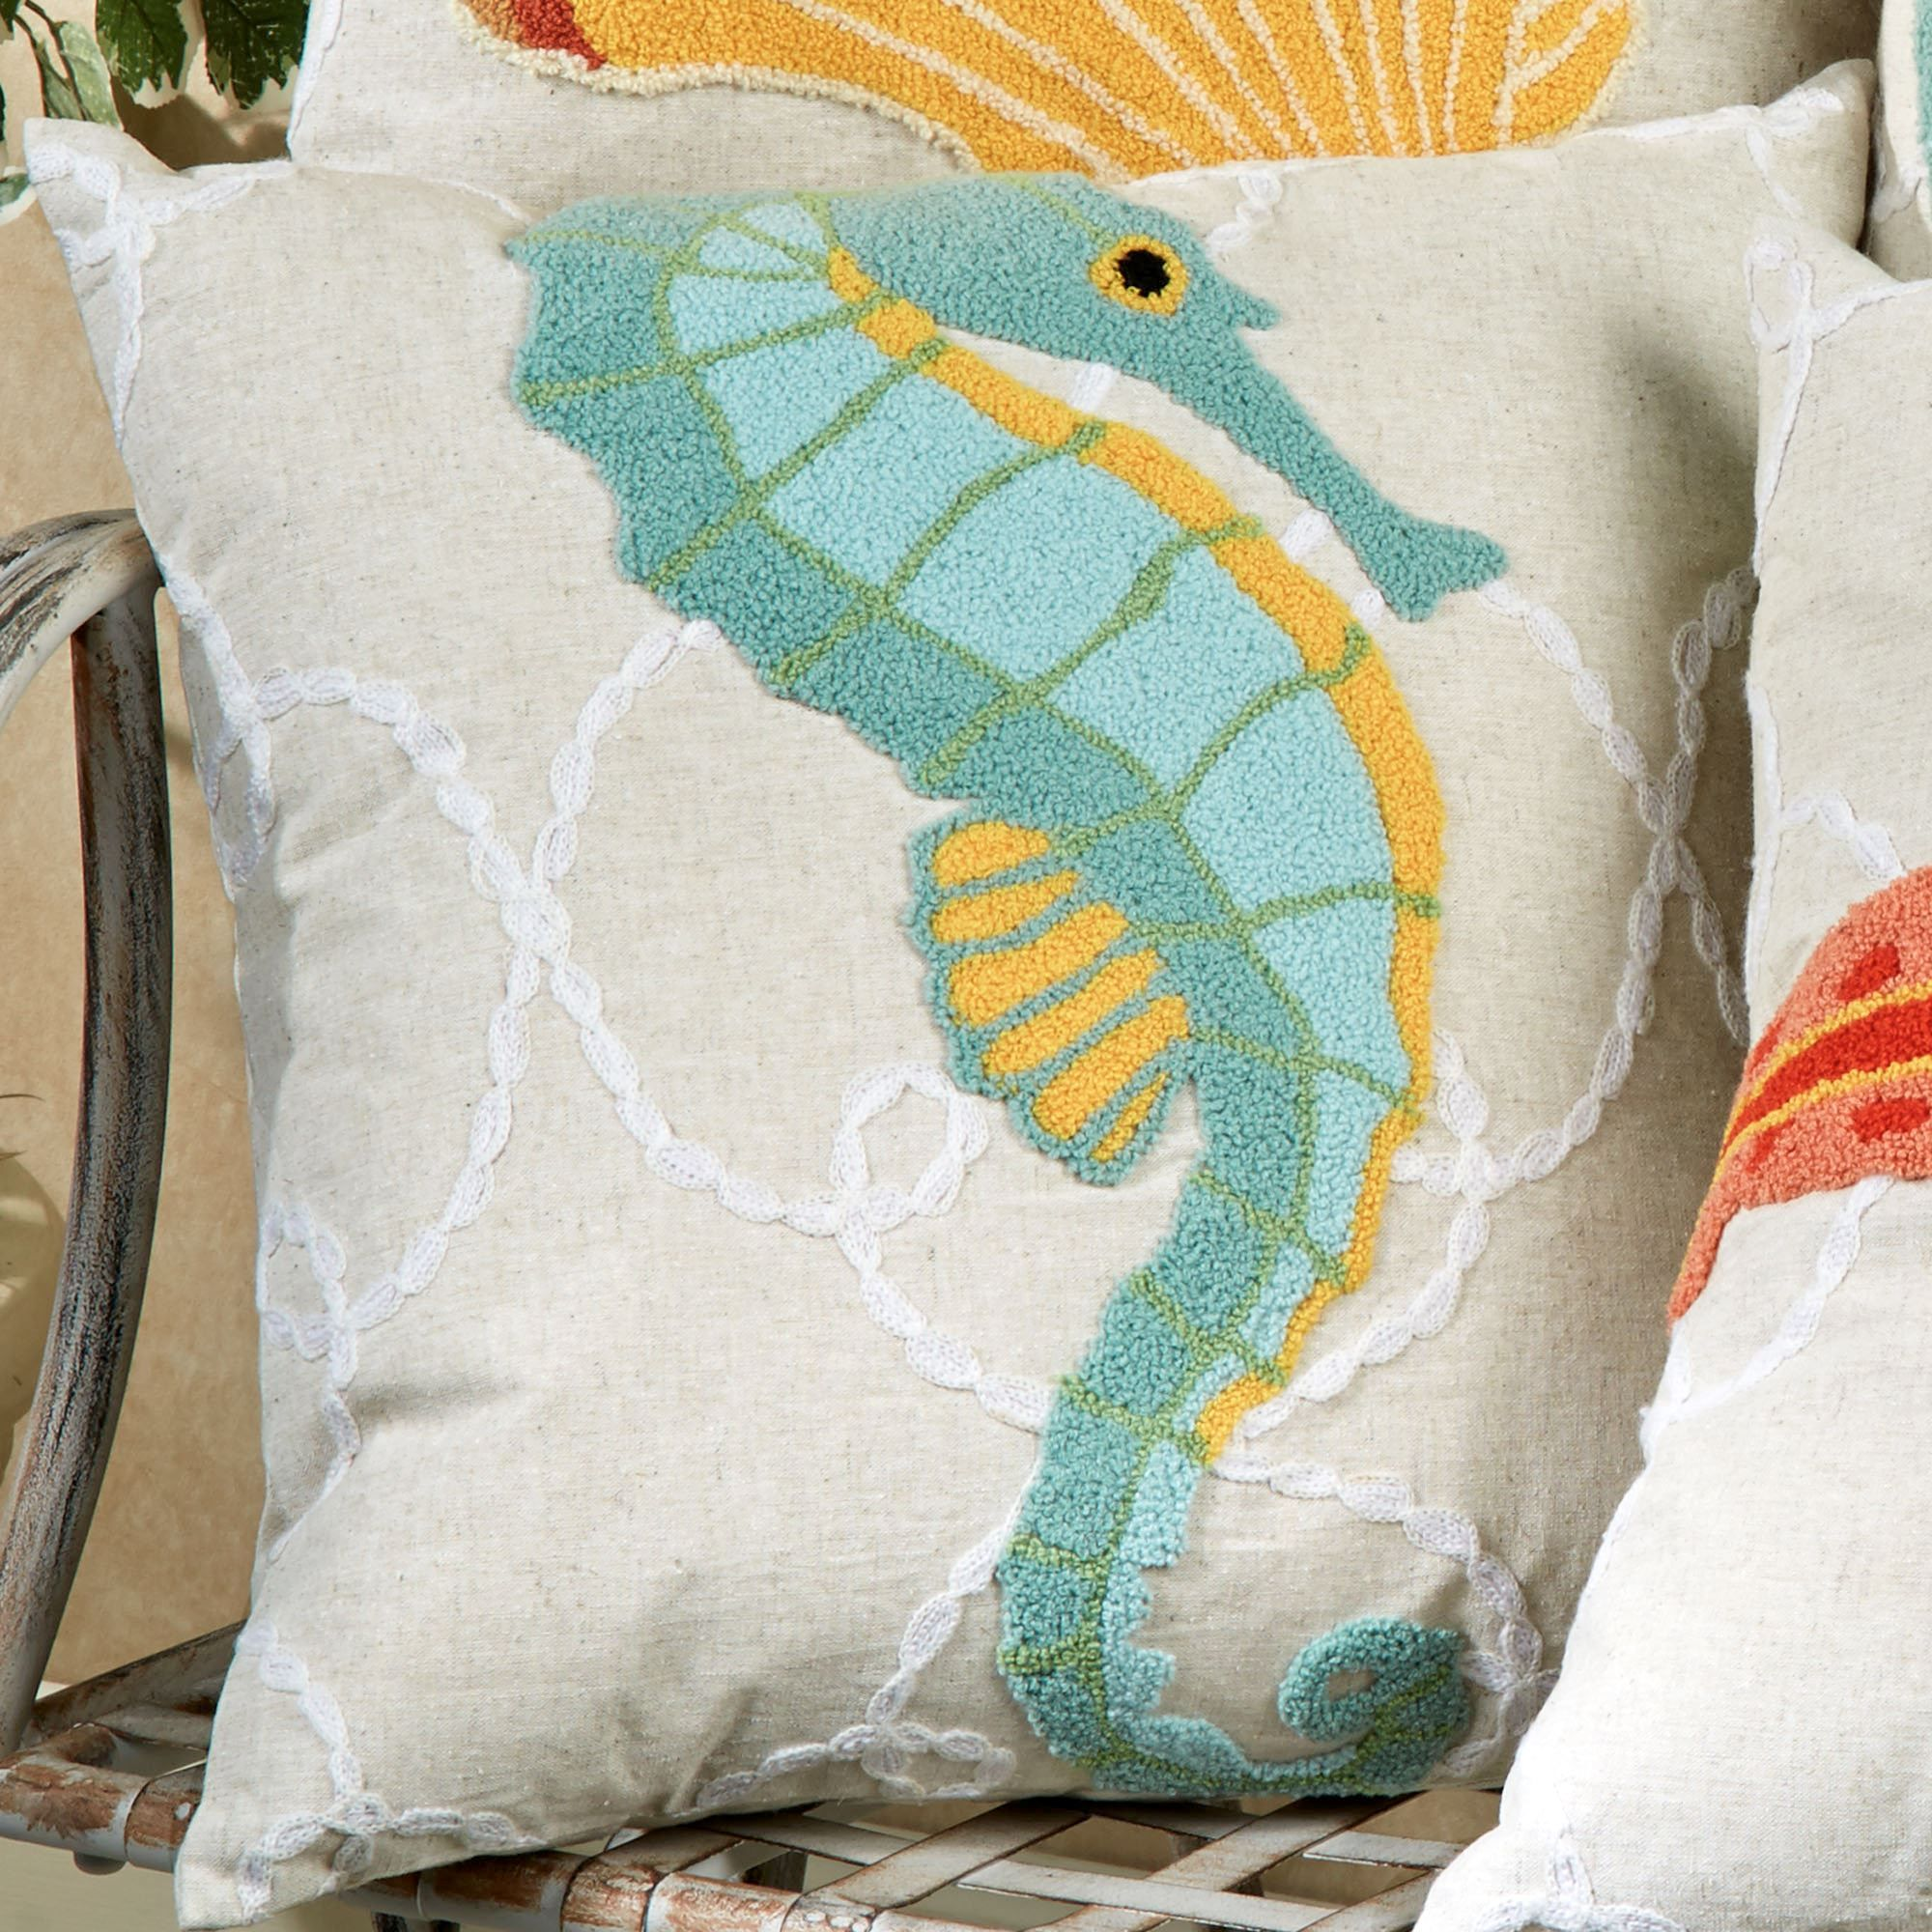 a41325e78de8a Washed Ashore Beach Themed Decorative Pillows